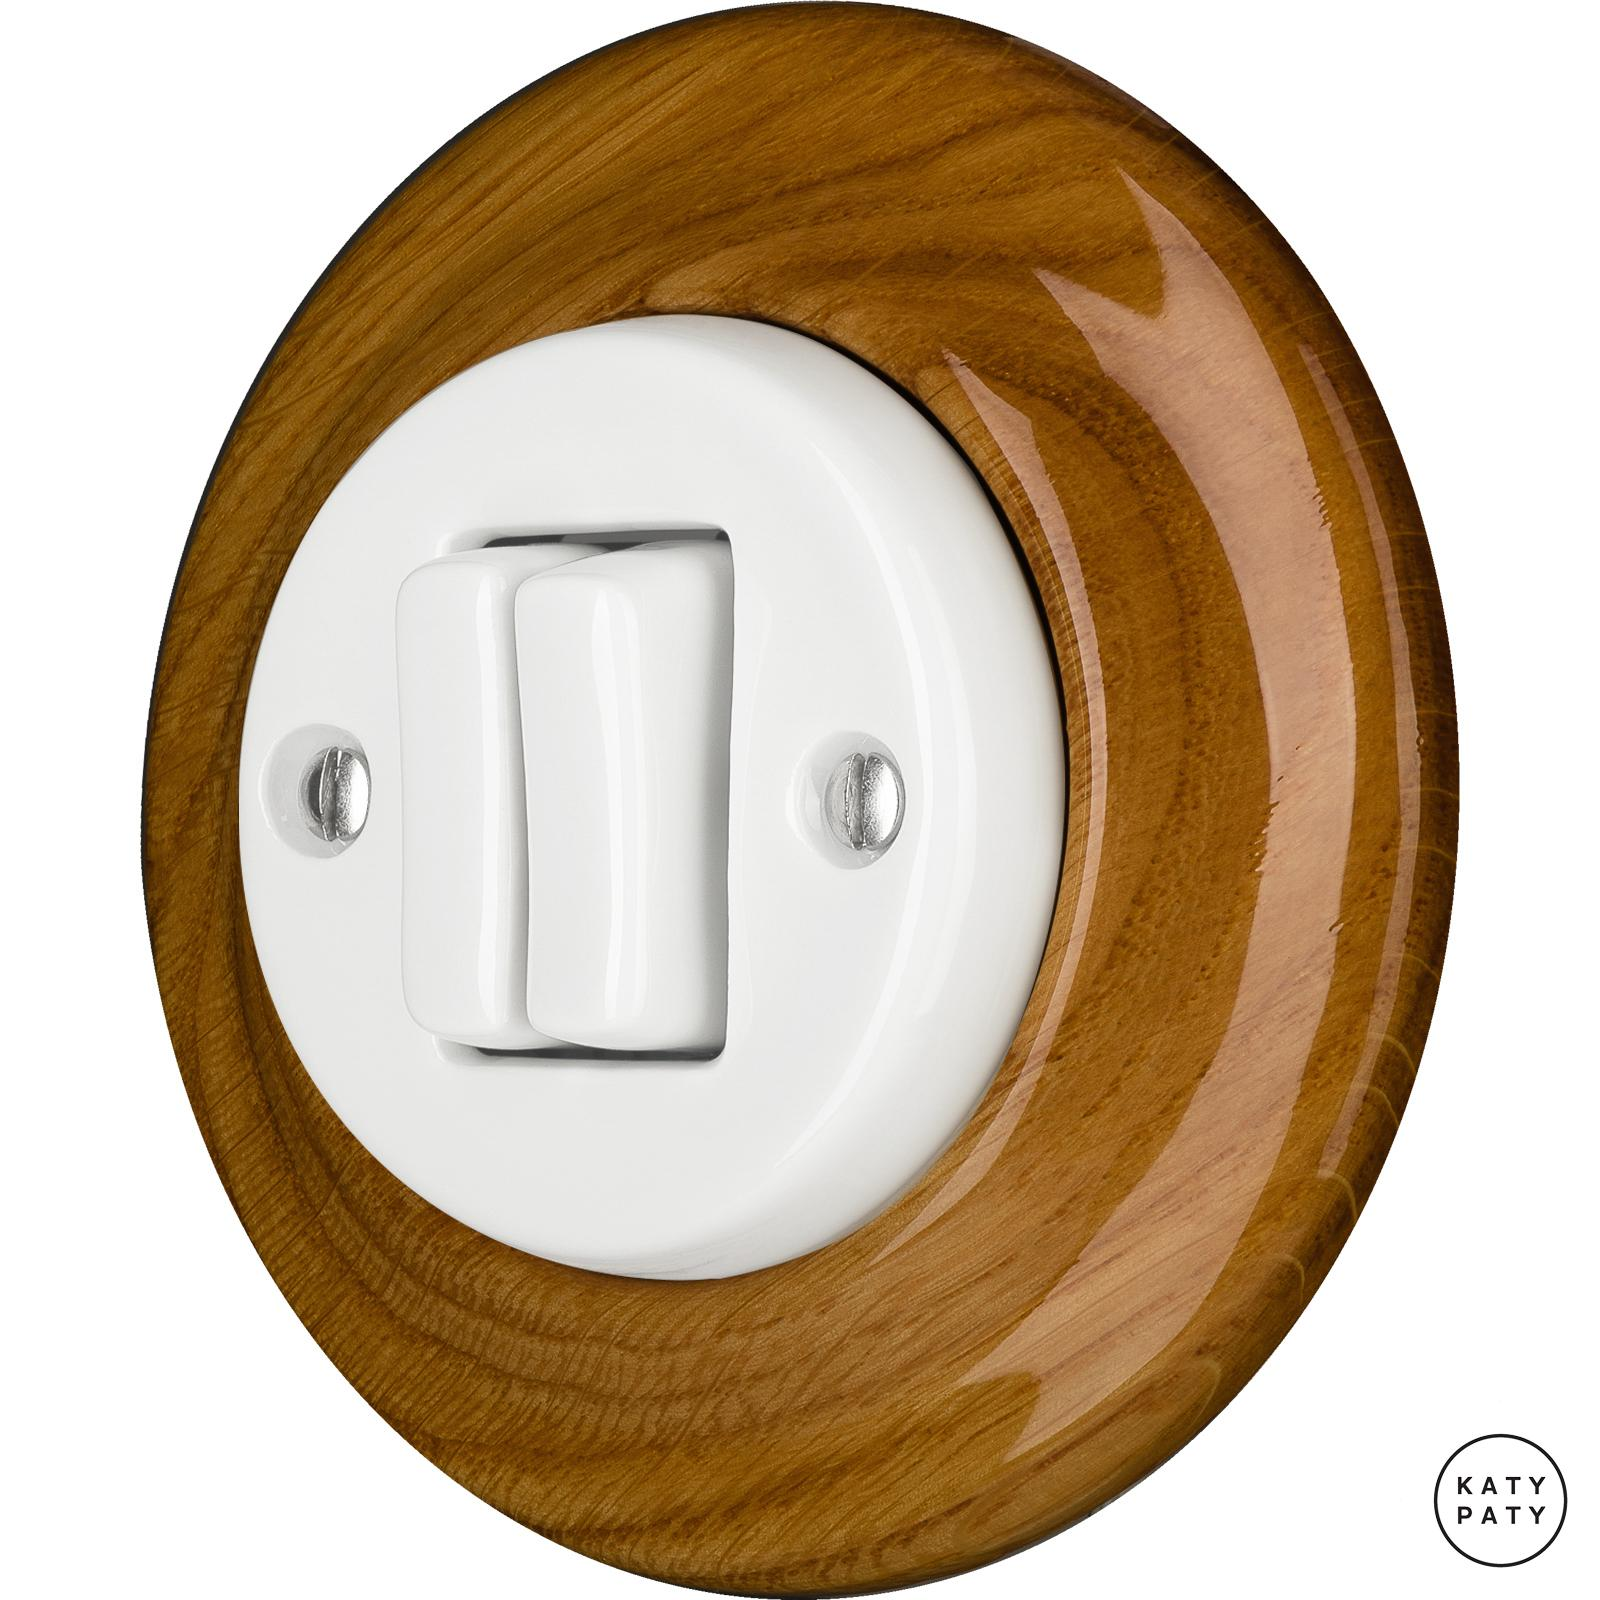 Porcelain switches - a double gang ()  - ROBUS | Katy Paty